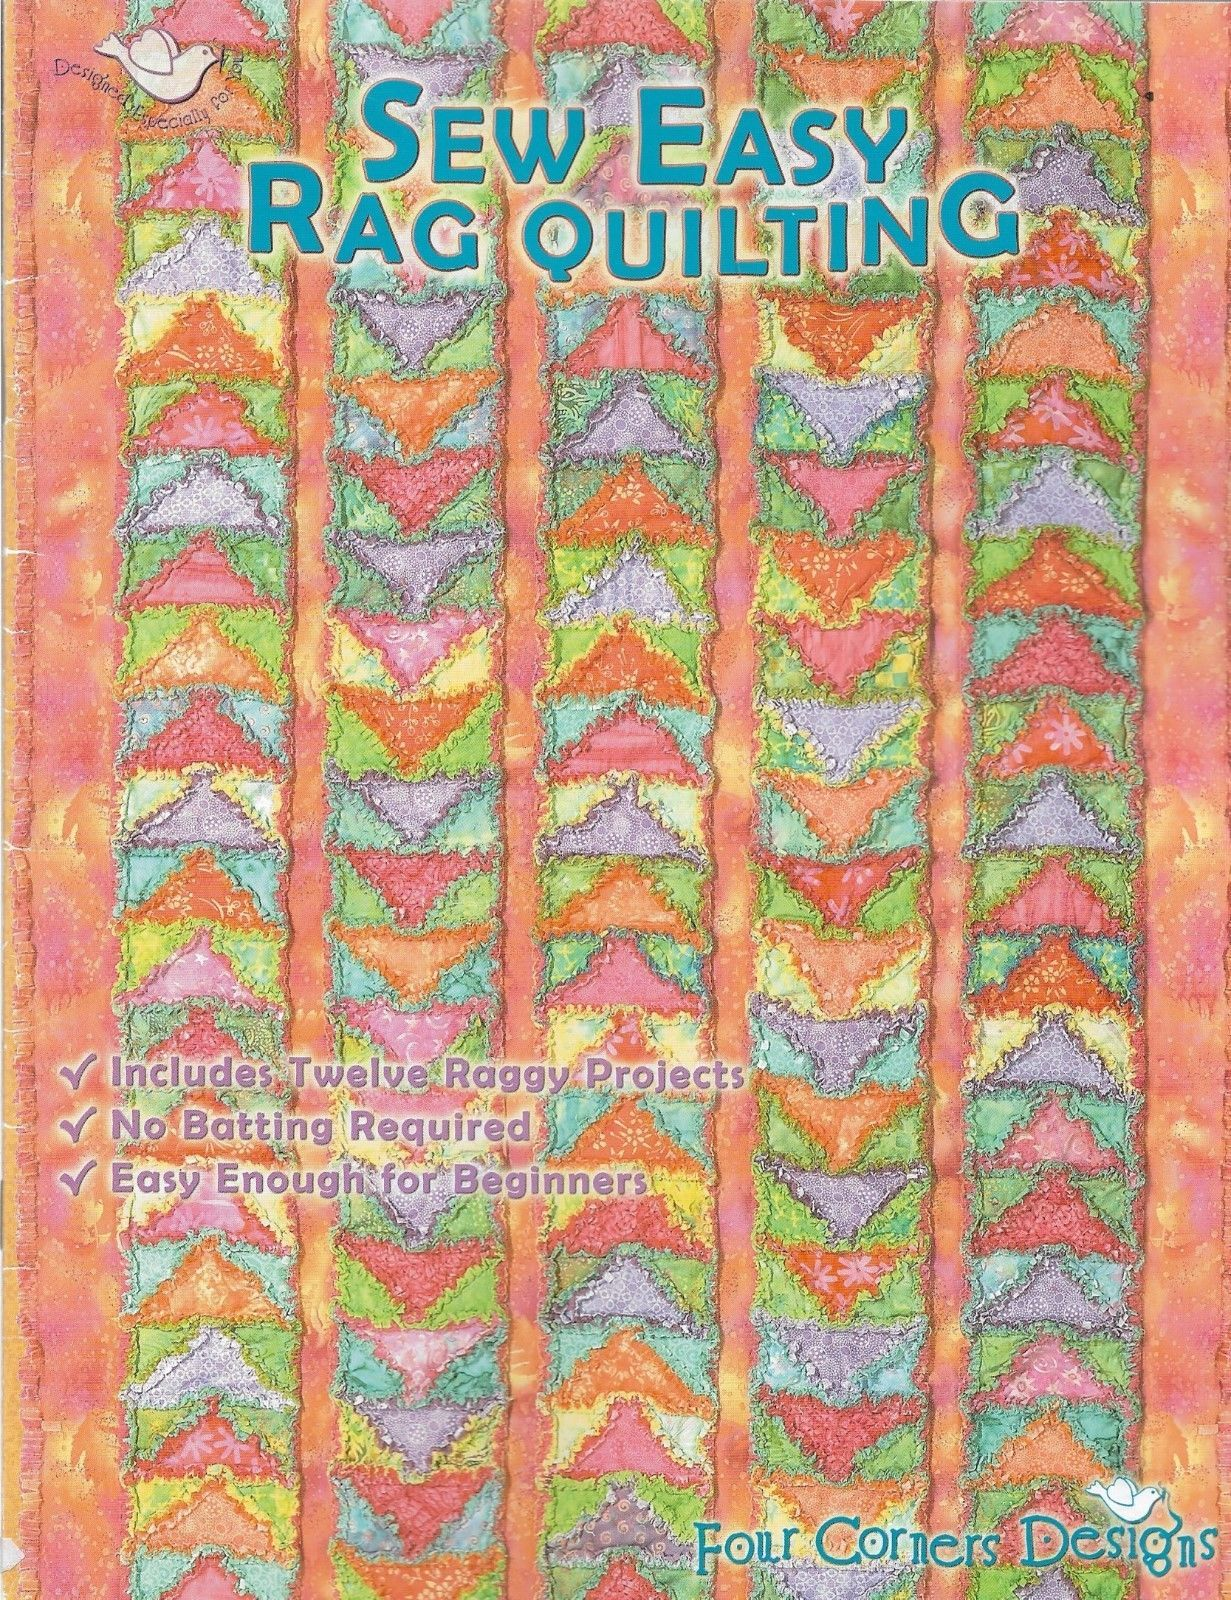 Quilt Pattern Booklet Sew Easy Rag Quilting 12 Projects No Batting Required